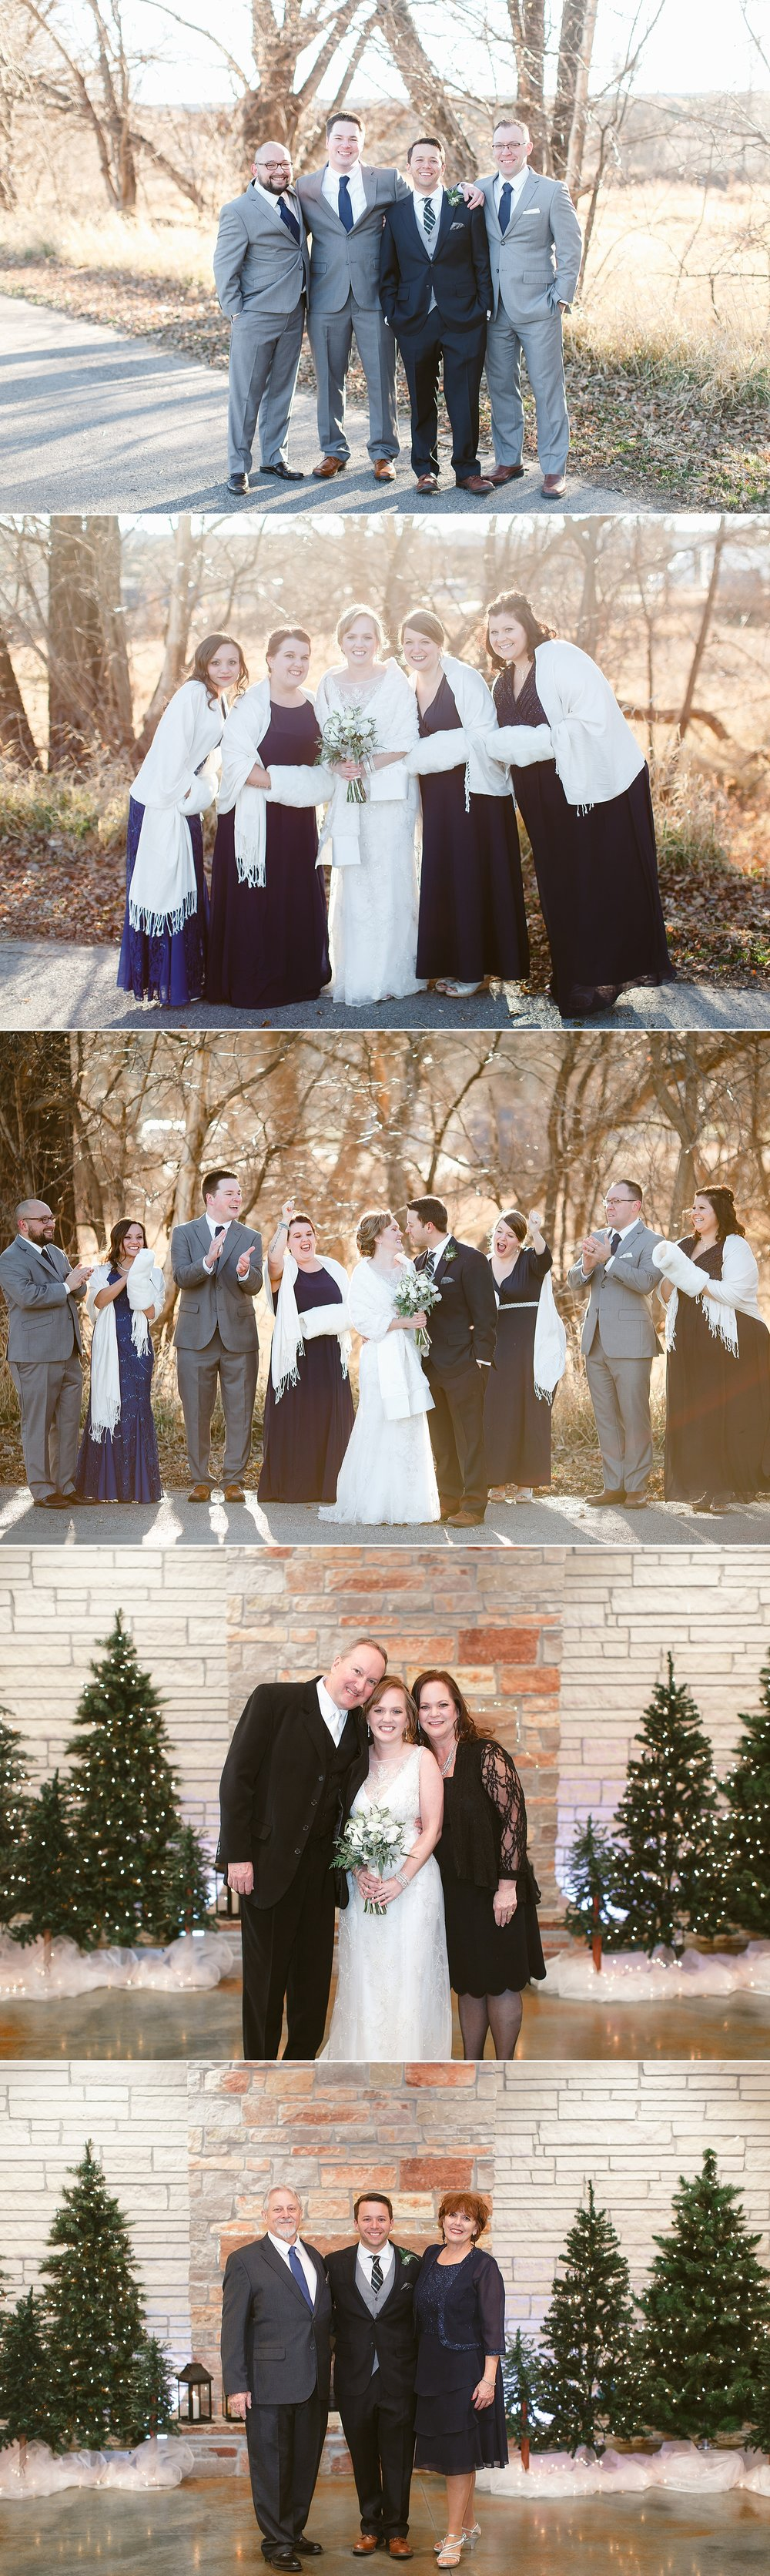 Midwest fine art wedding Des Moines Fall Wedding photographer_0641.jpg